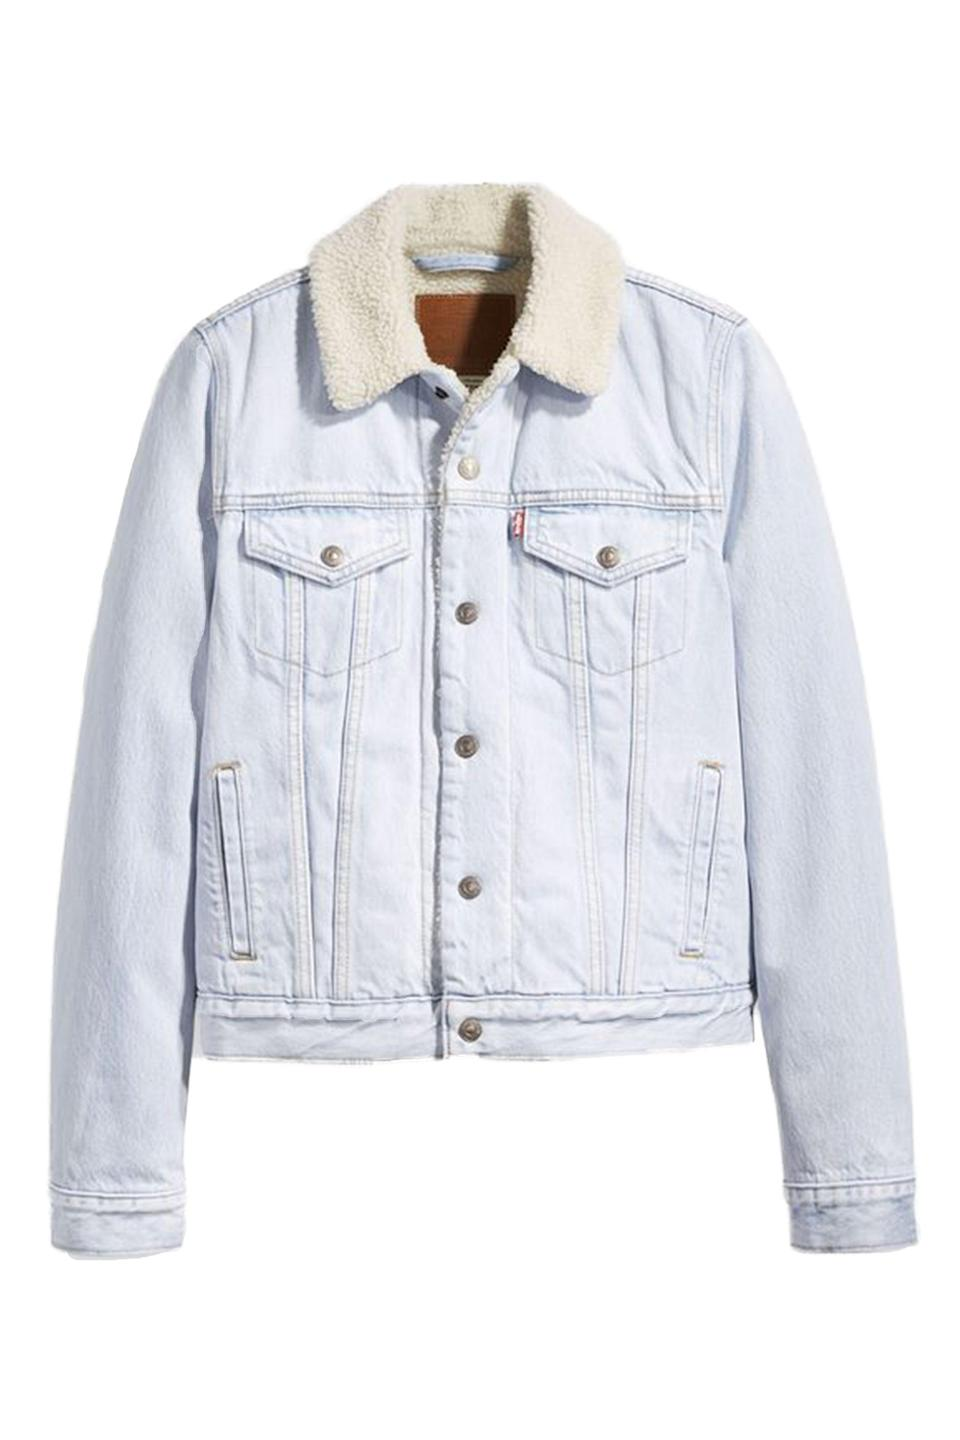 """<p><strong>Levi's</strong></p><p>amazon.com</p><p><a href=""""https://www.amazon.com/dp/B081YW2Z17?tag=syn-yahoo-20&ascsubtag=%5Bartid%7C10063.g.34824549%5Bsrc%7Cyahoo-us"""" rel=""""nofollow noopener"""" target=""""_blank"""" data-ylk=""""slk:Shop Now"""" class=""""link rapid-noclick-resp"""">Shop Now</a></p><p>Levi's sherpa jackets have been worn by every fashion girl from Gigi Hadid to Zendaya. The denim staple is not only a godsend for complicated transitional temps, but a cozy piece to throw on at home.</p>"""